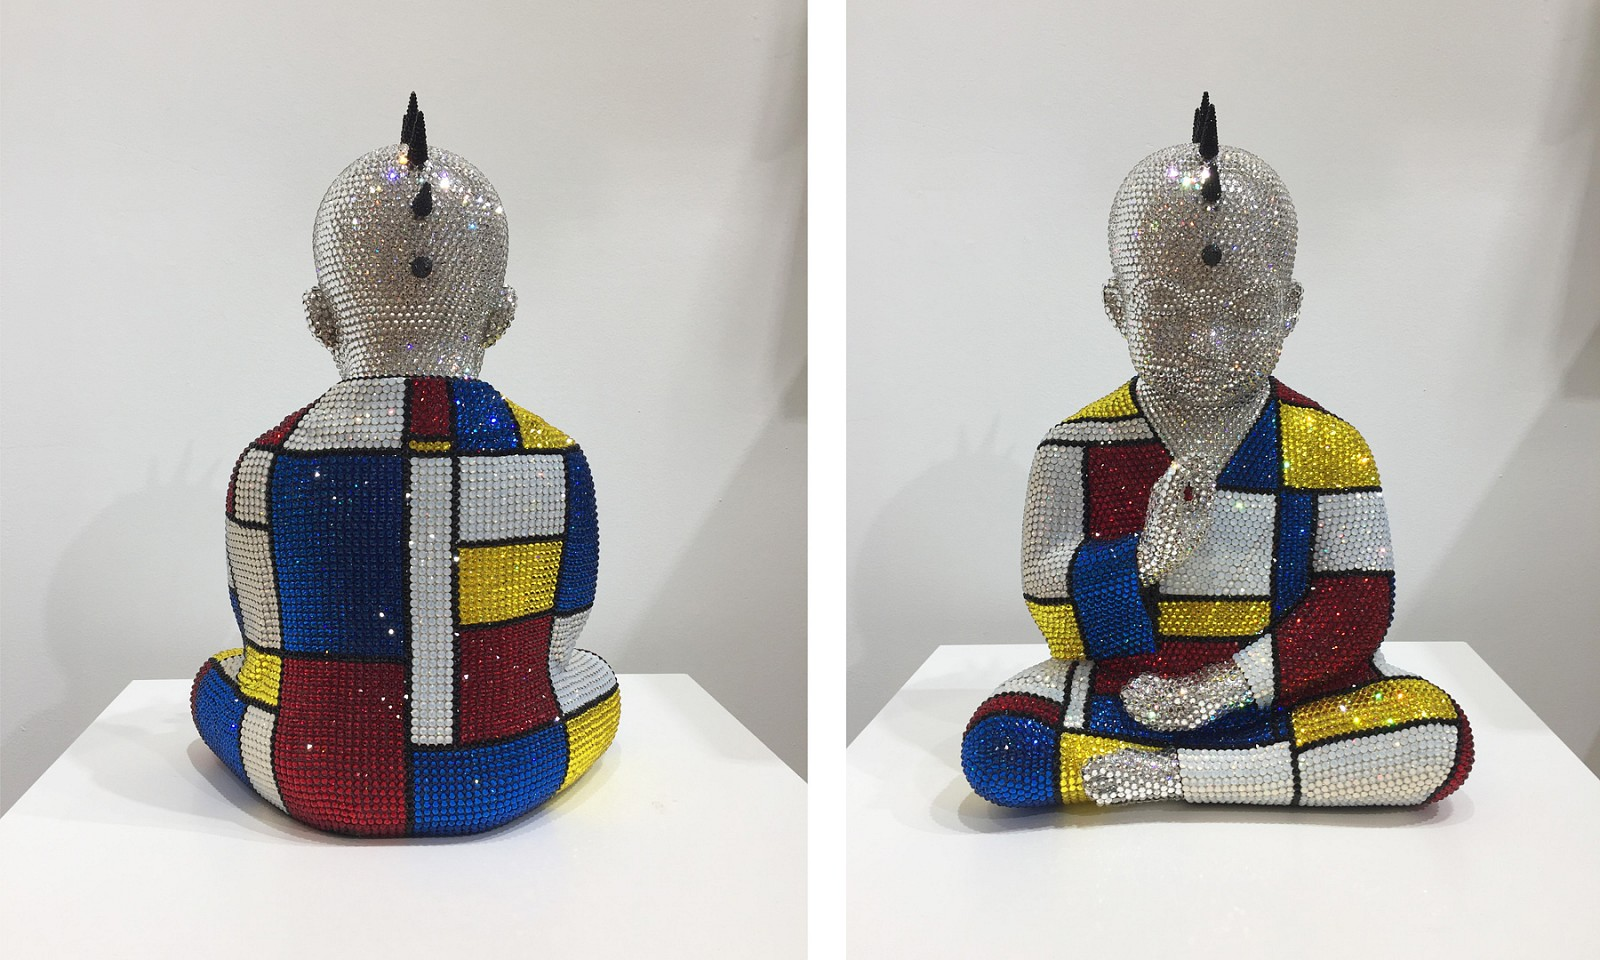 Metis Atash ,   Z THE SPACE WITHIN feat Mondrian  ,  2017     Resin, acrylic paint and 28,000 Swarovski crystals ,  17 1/2 x 12 x 9 in. (45.7 cm)     ATAS0024